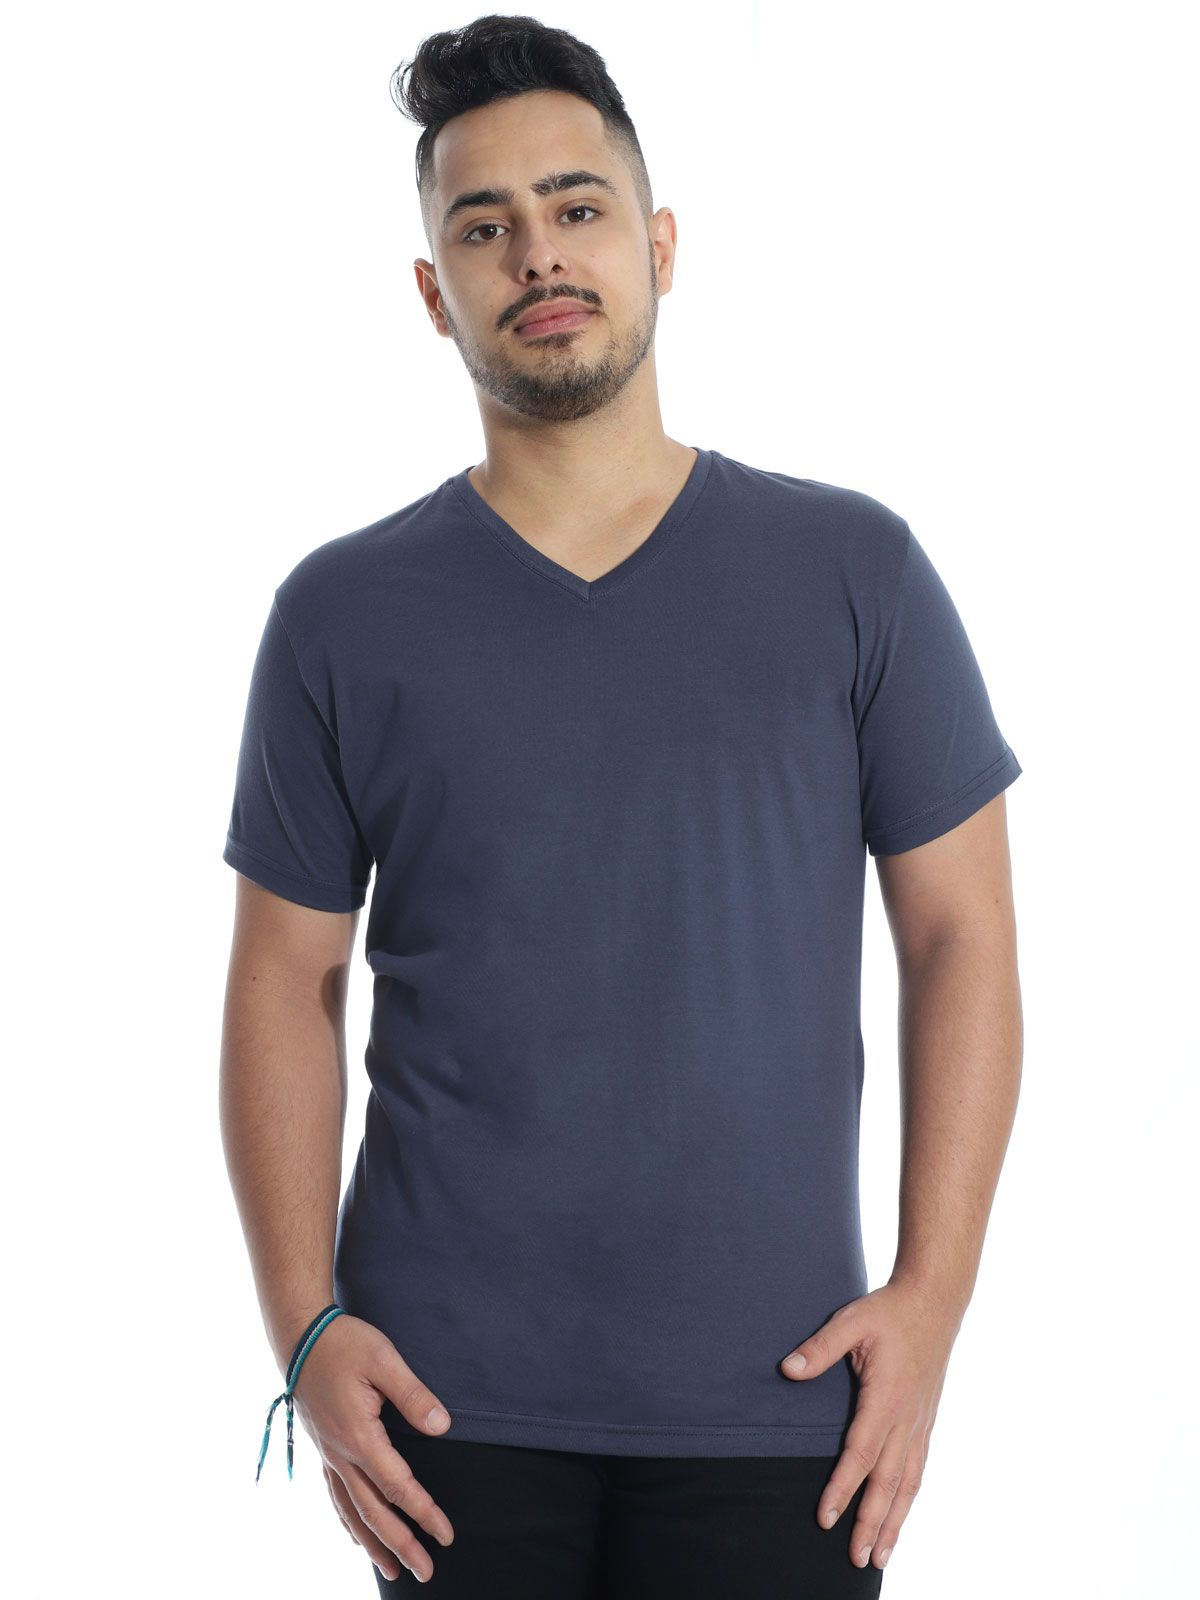 Camiseta Anistia Slim Fit Decote V. Lisa Grafite